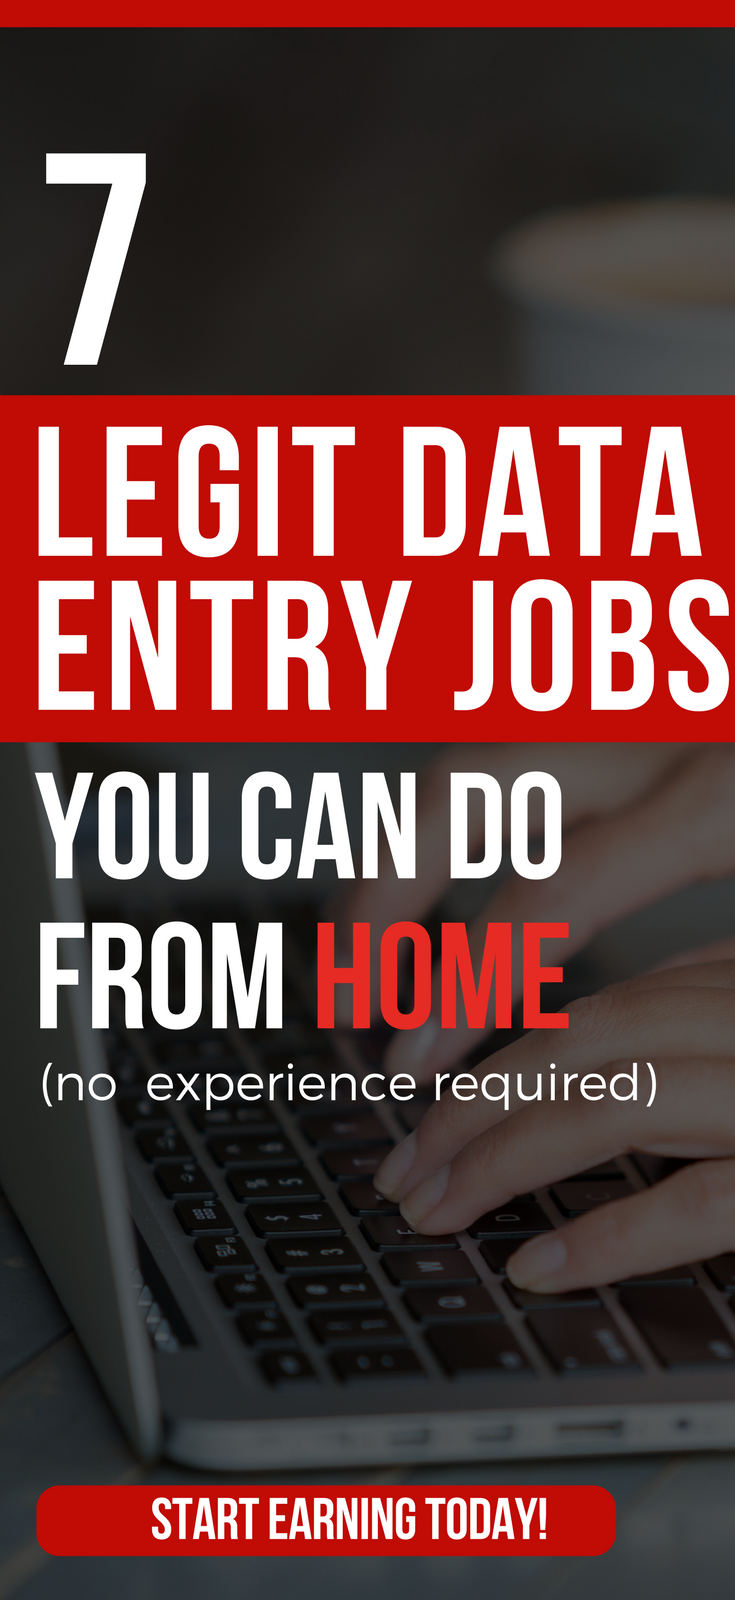 earn $100 per hour by data entry jobs without investment | online